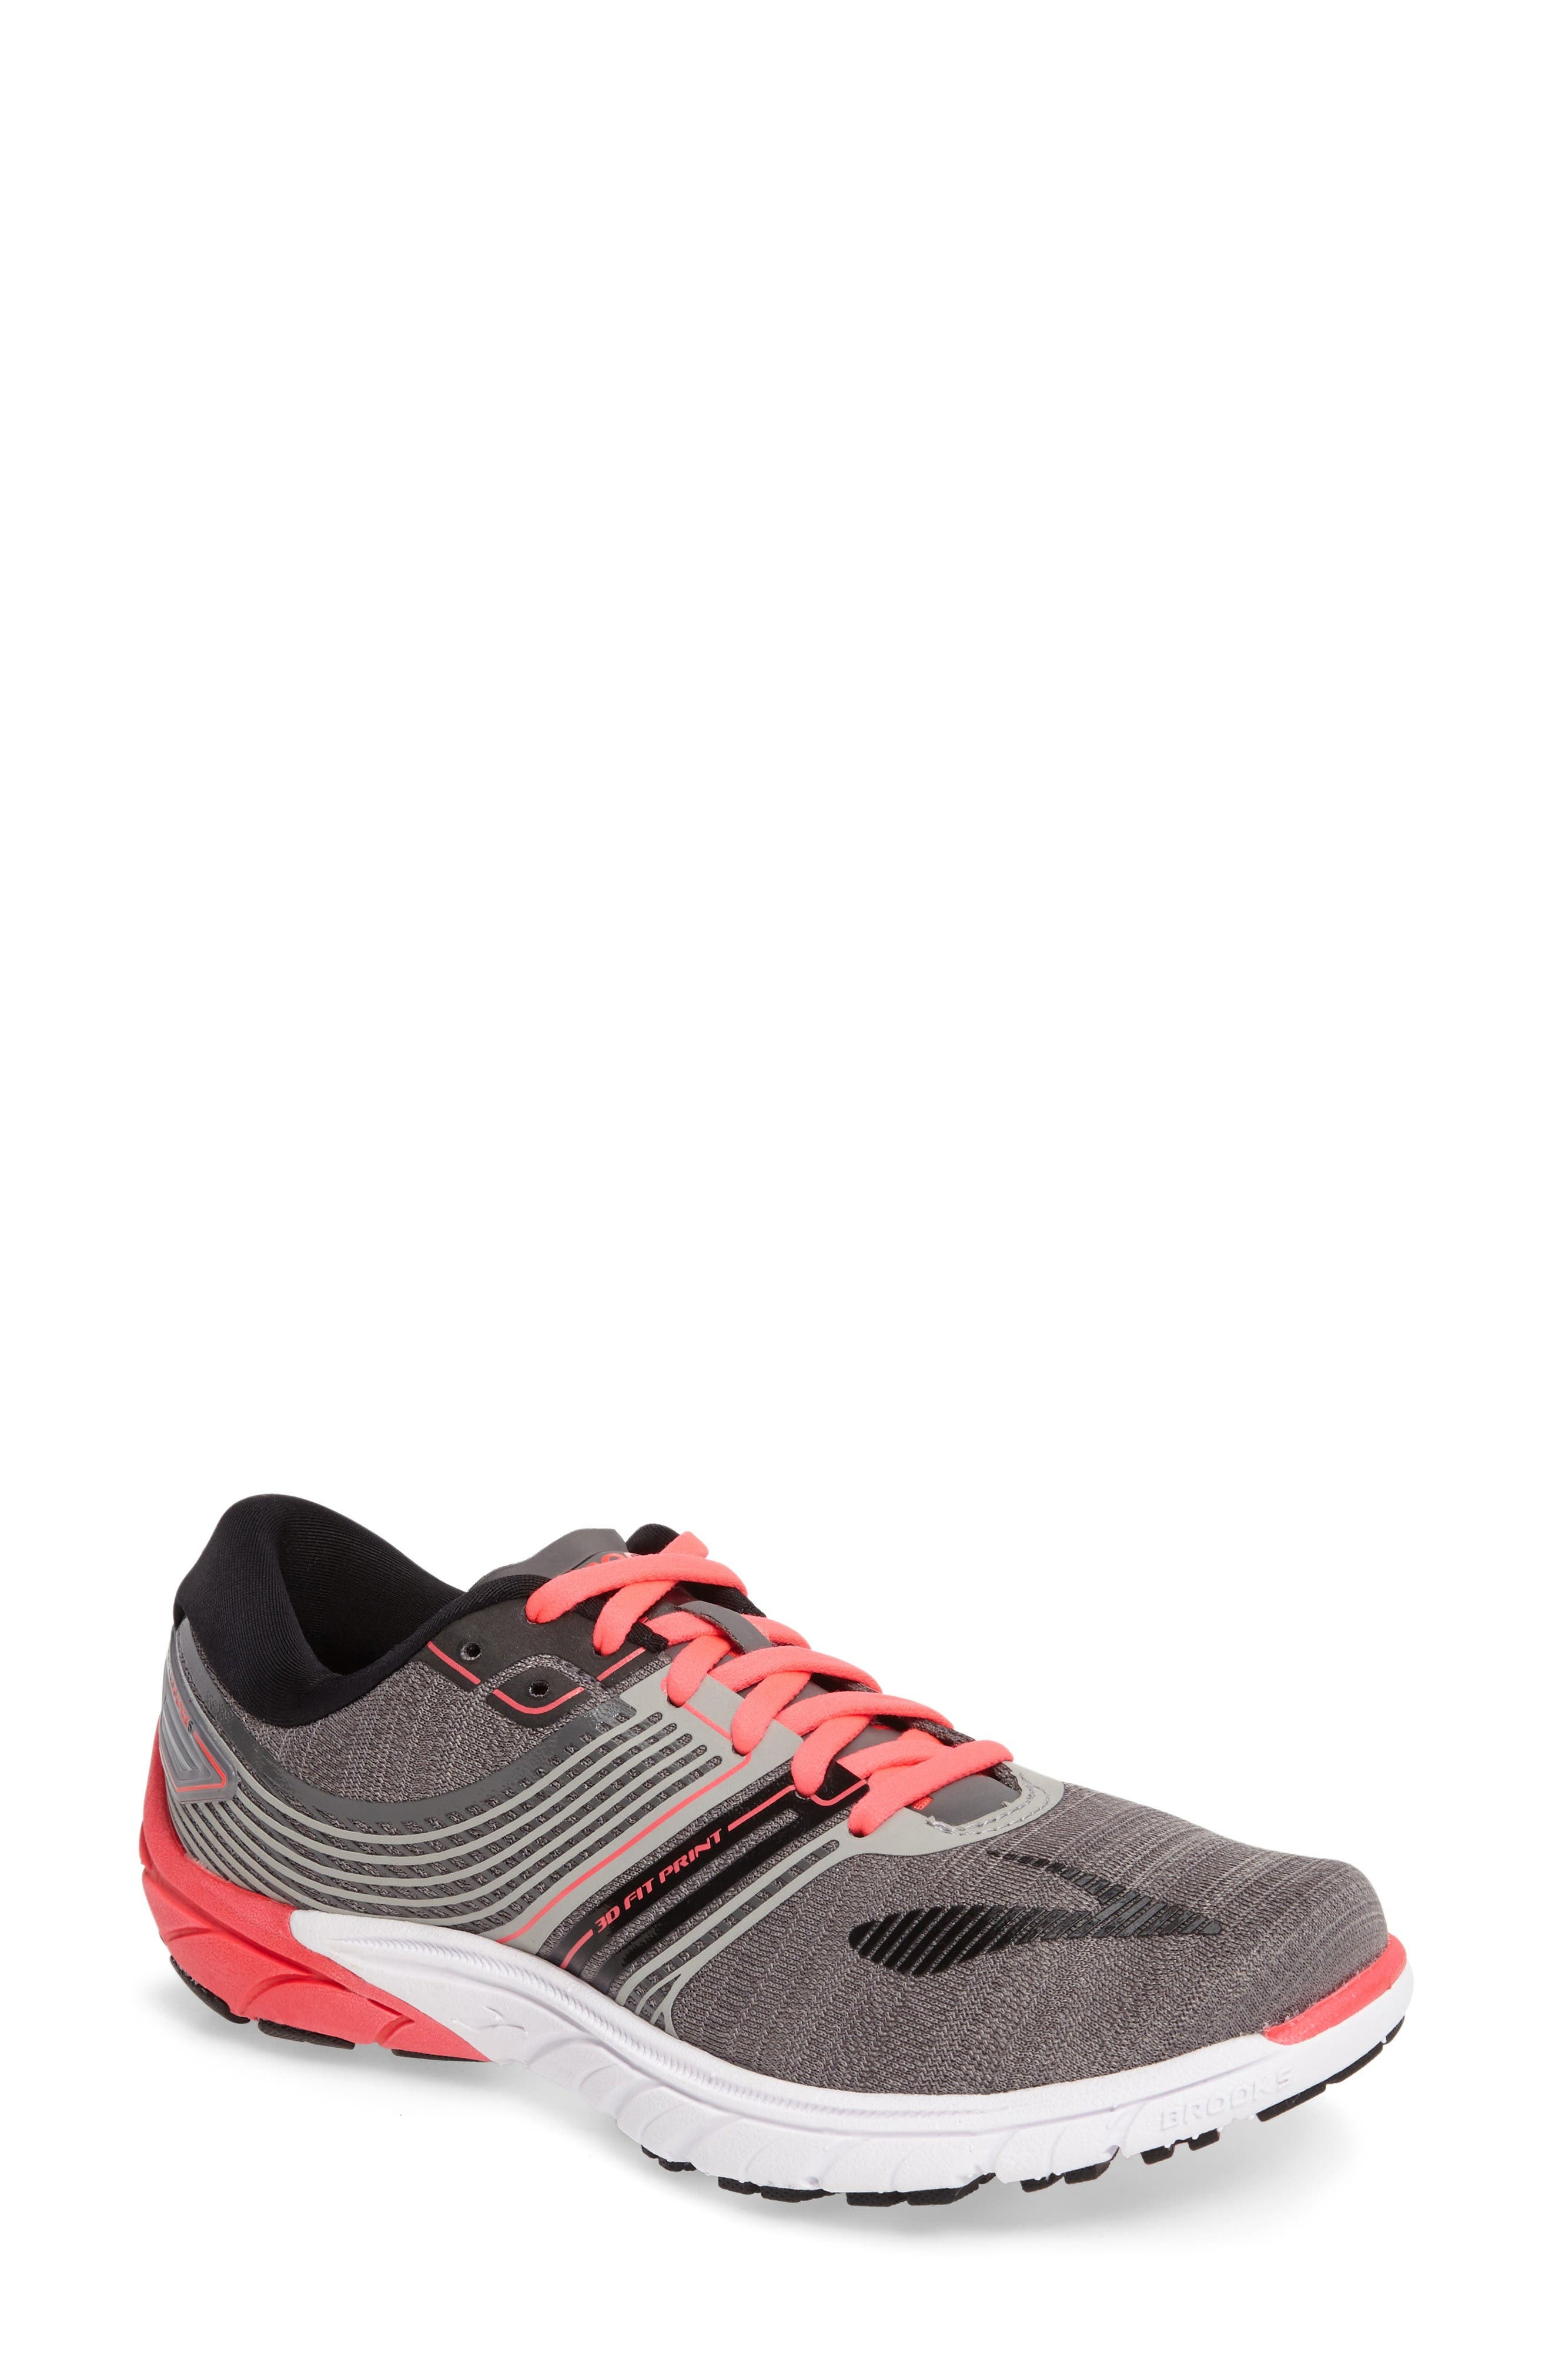 PureCadence 6 Running Shoe,                         Main,                         color, Castle Rock/ Black/ Diva Pink